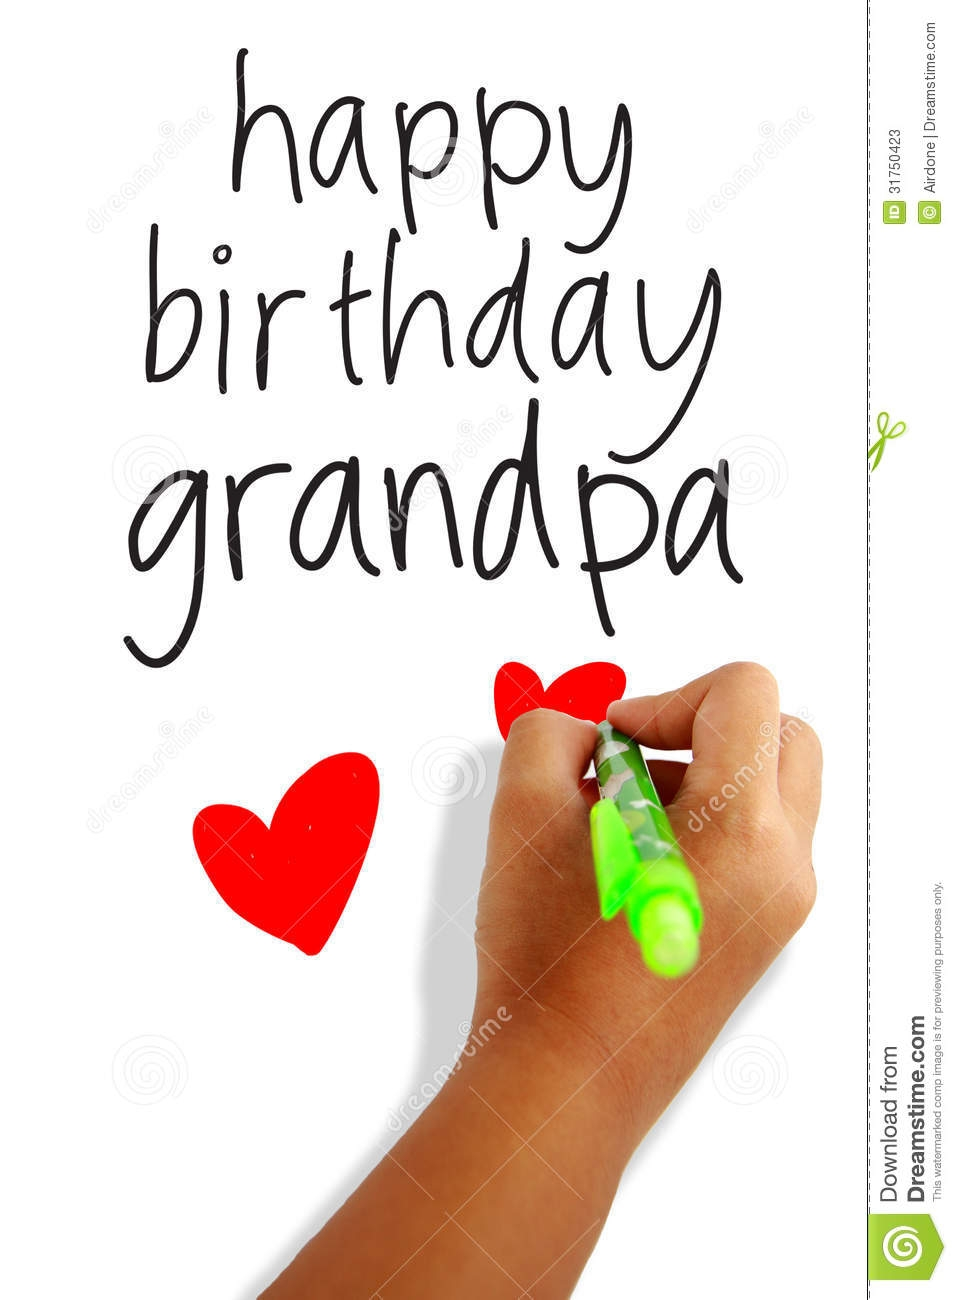 happy birthday dad coloring pages - stock photos happy birthday grandpa girls hand holding pen writing greeting card image